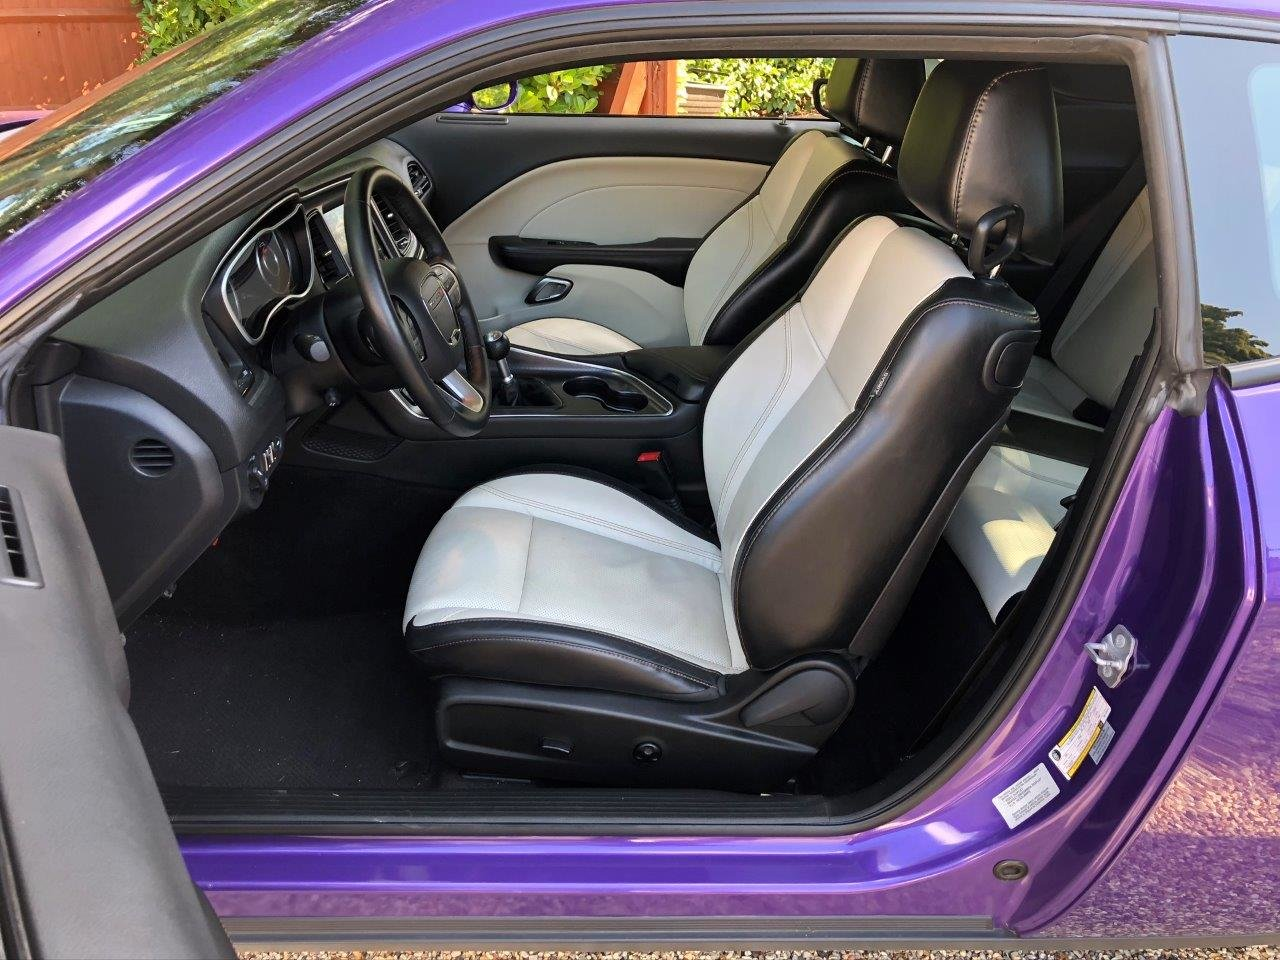 2016 Challenger R/T HEMI V8 in Plumb Crazy Purple For Sale (picture 6 of 6)